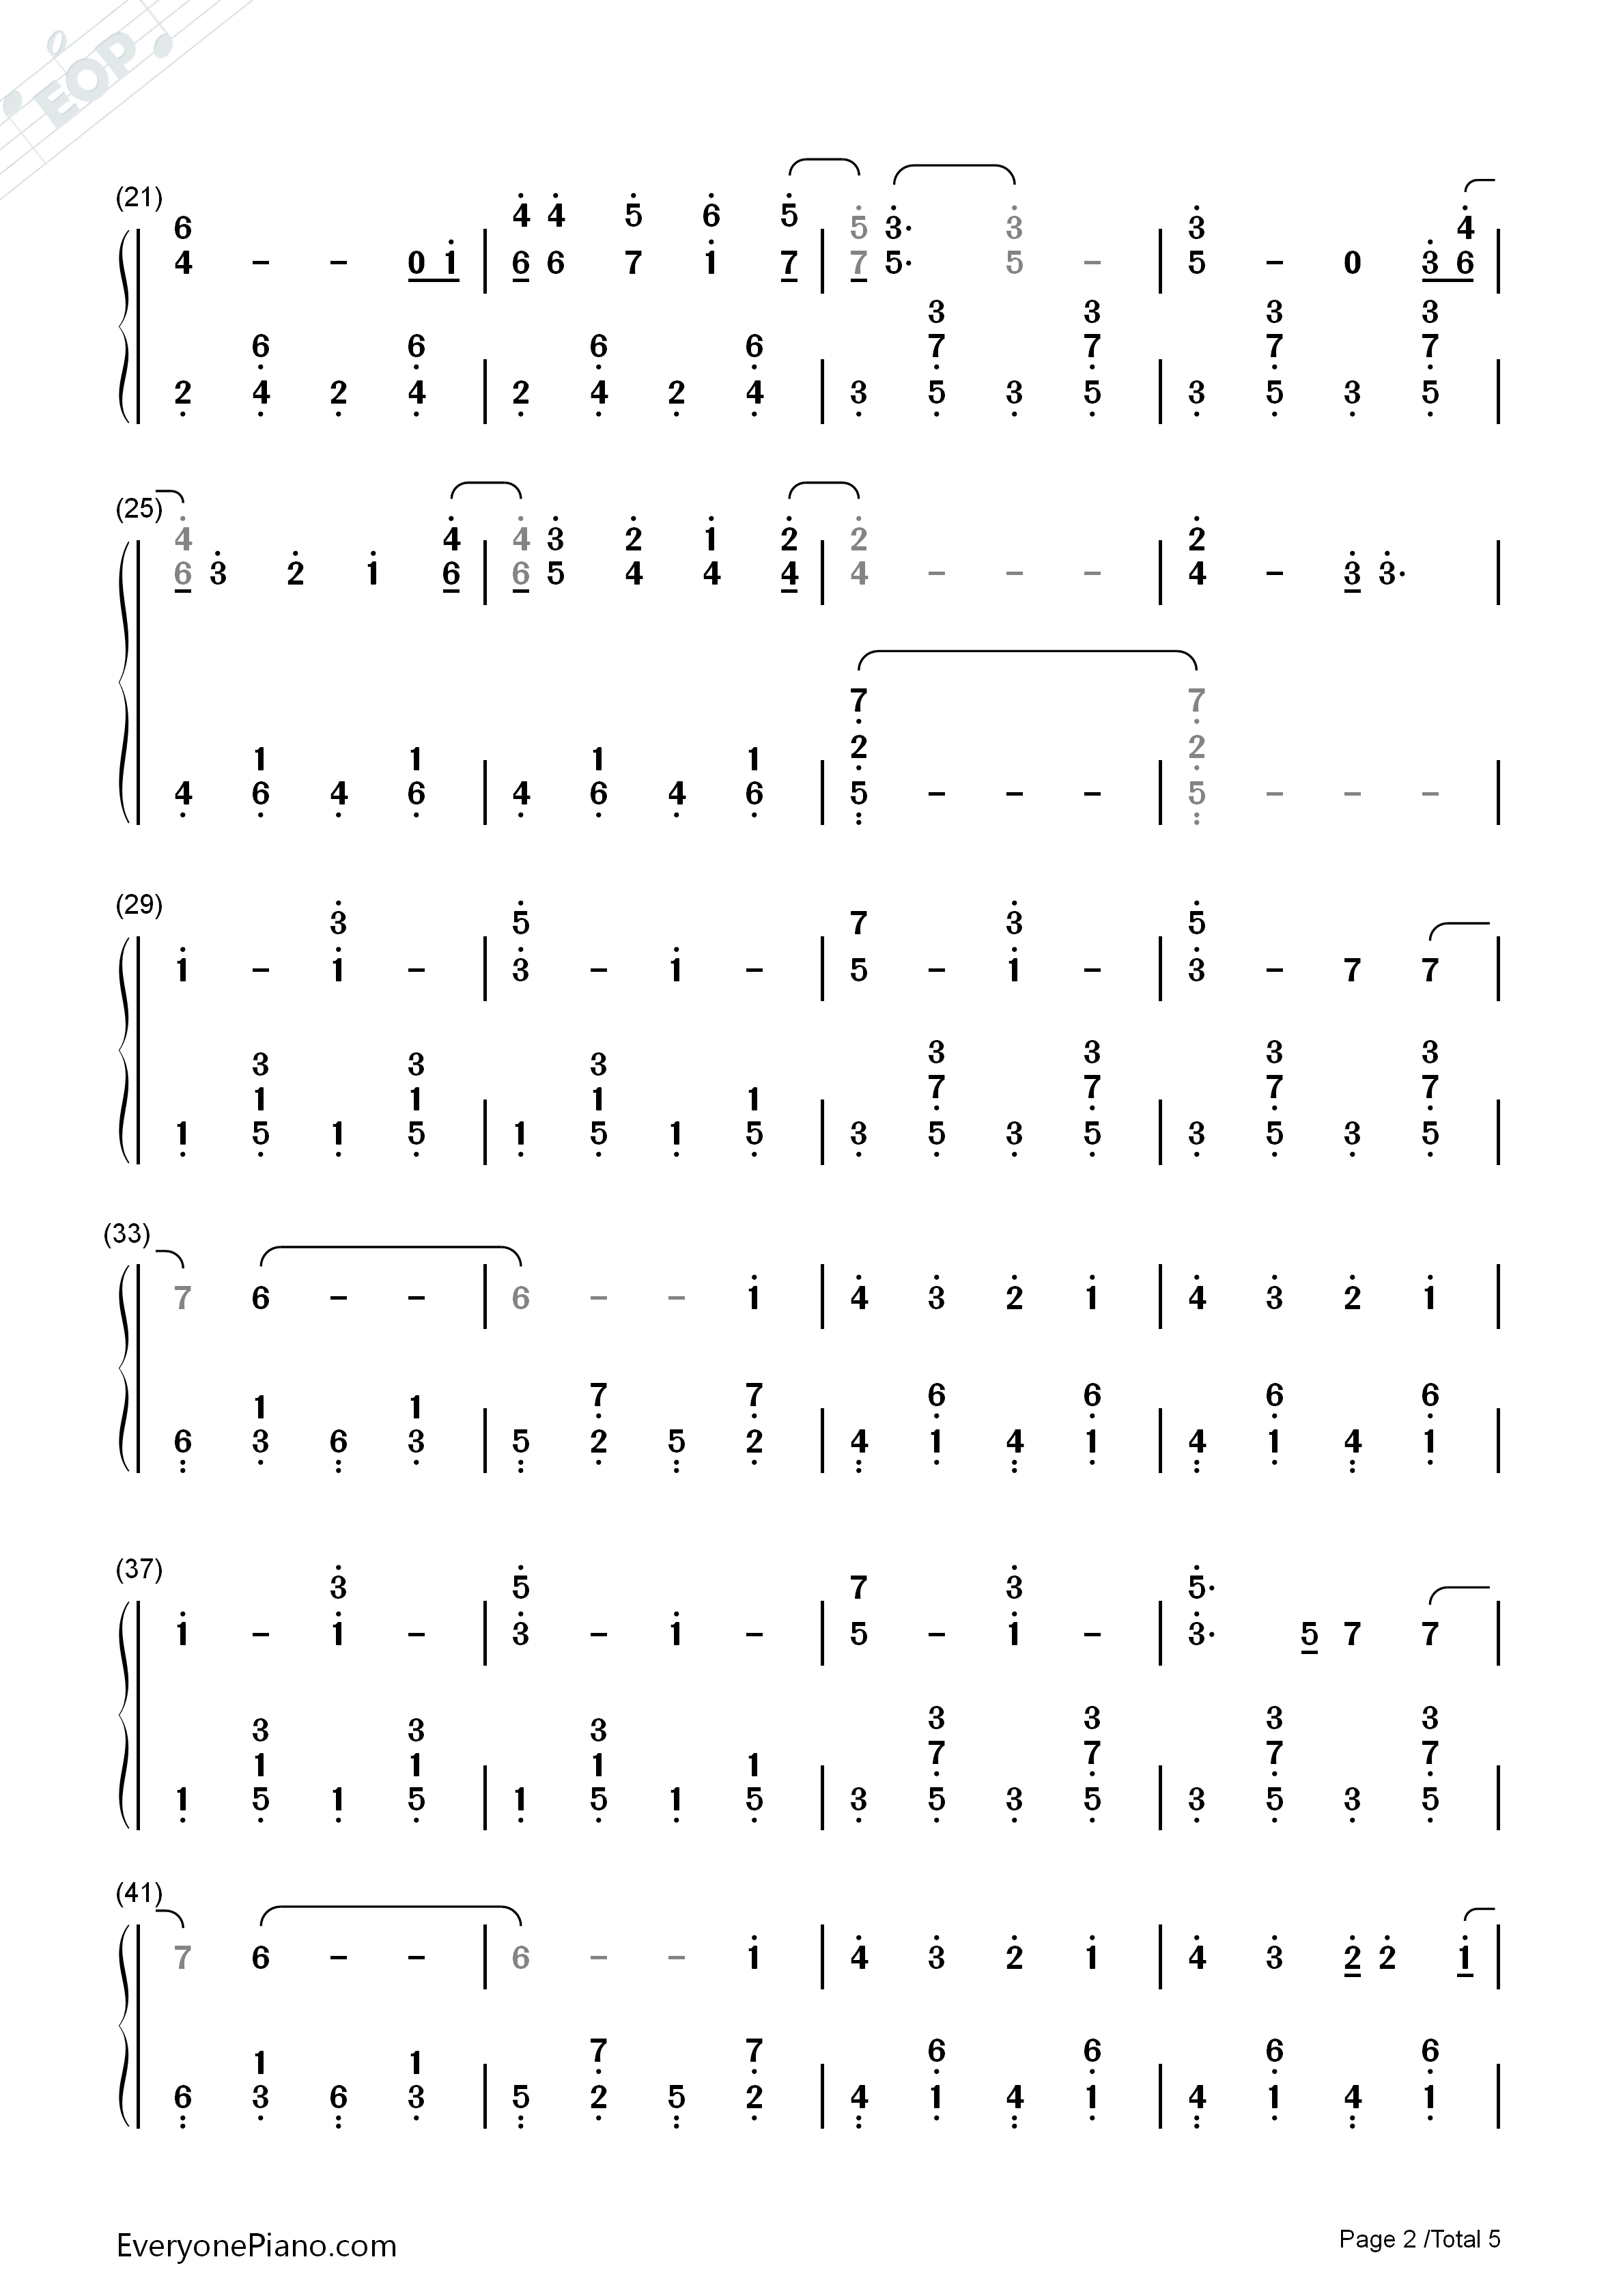 Count on me bruno mars numbered musical notation preview 2 free listen now print sheet count on me bruno mars numbered musical notation preview 2 hexwebz Image collections